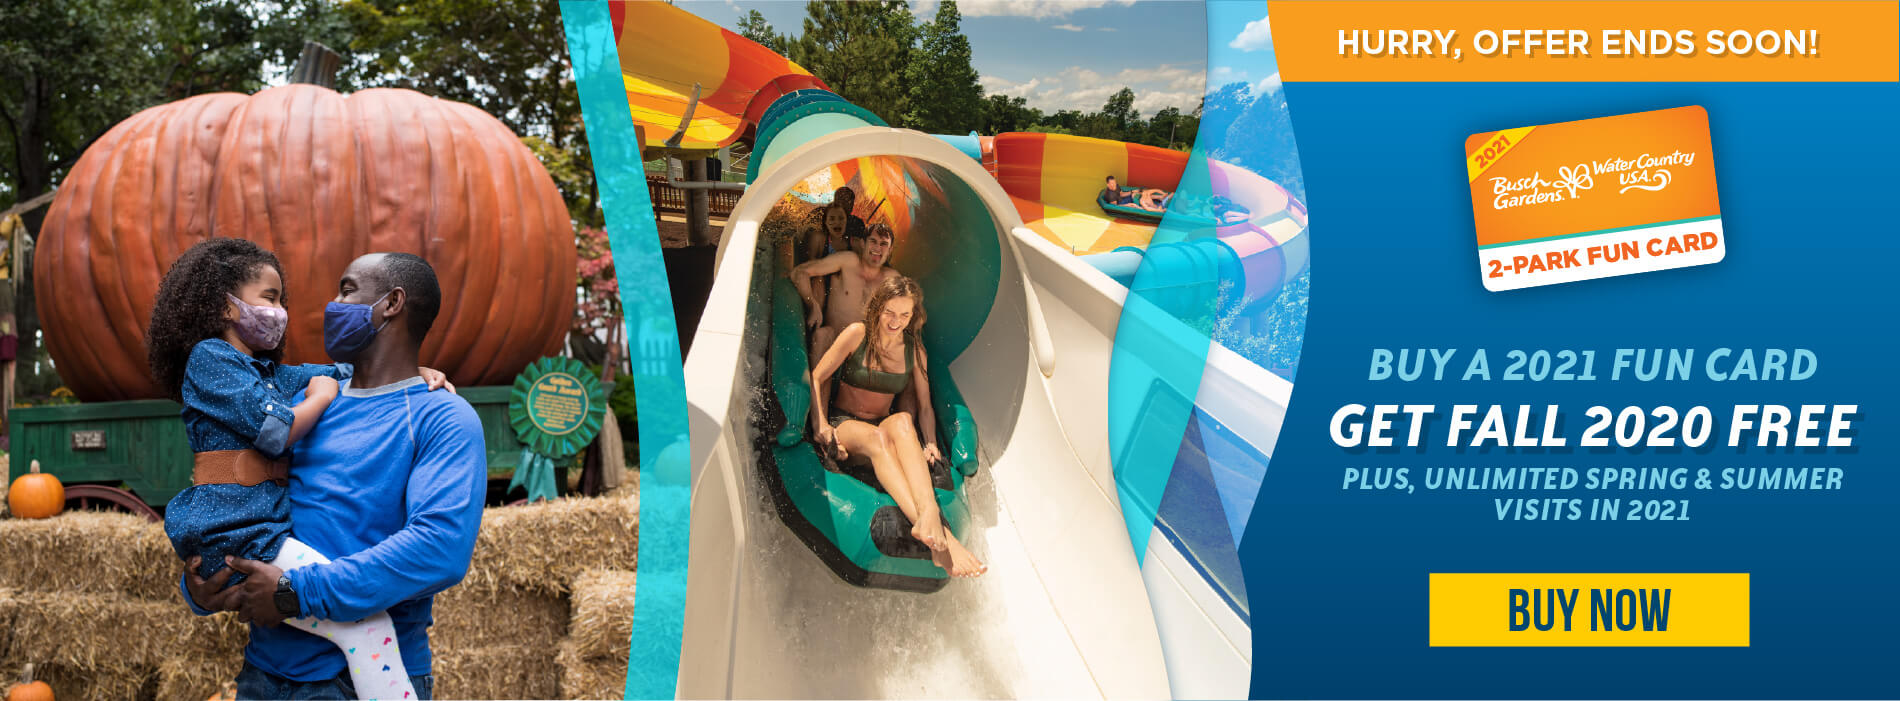 Water Country USA Fun Card Offer